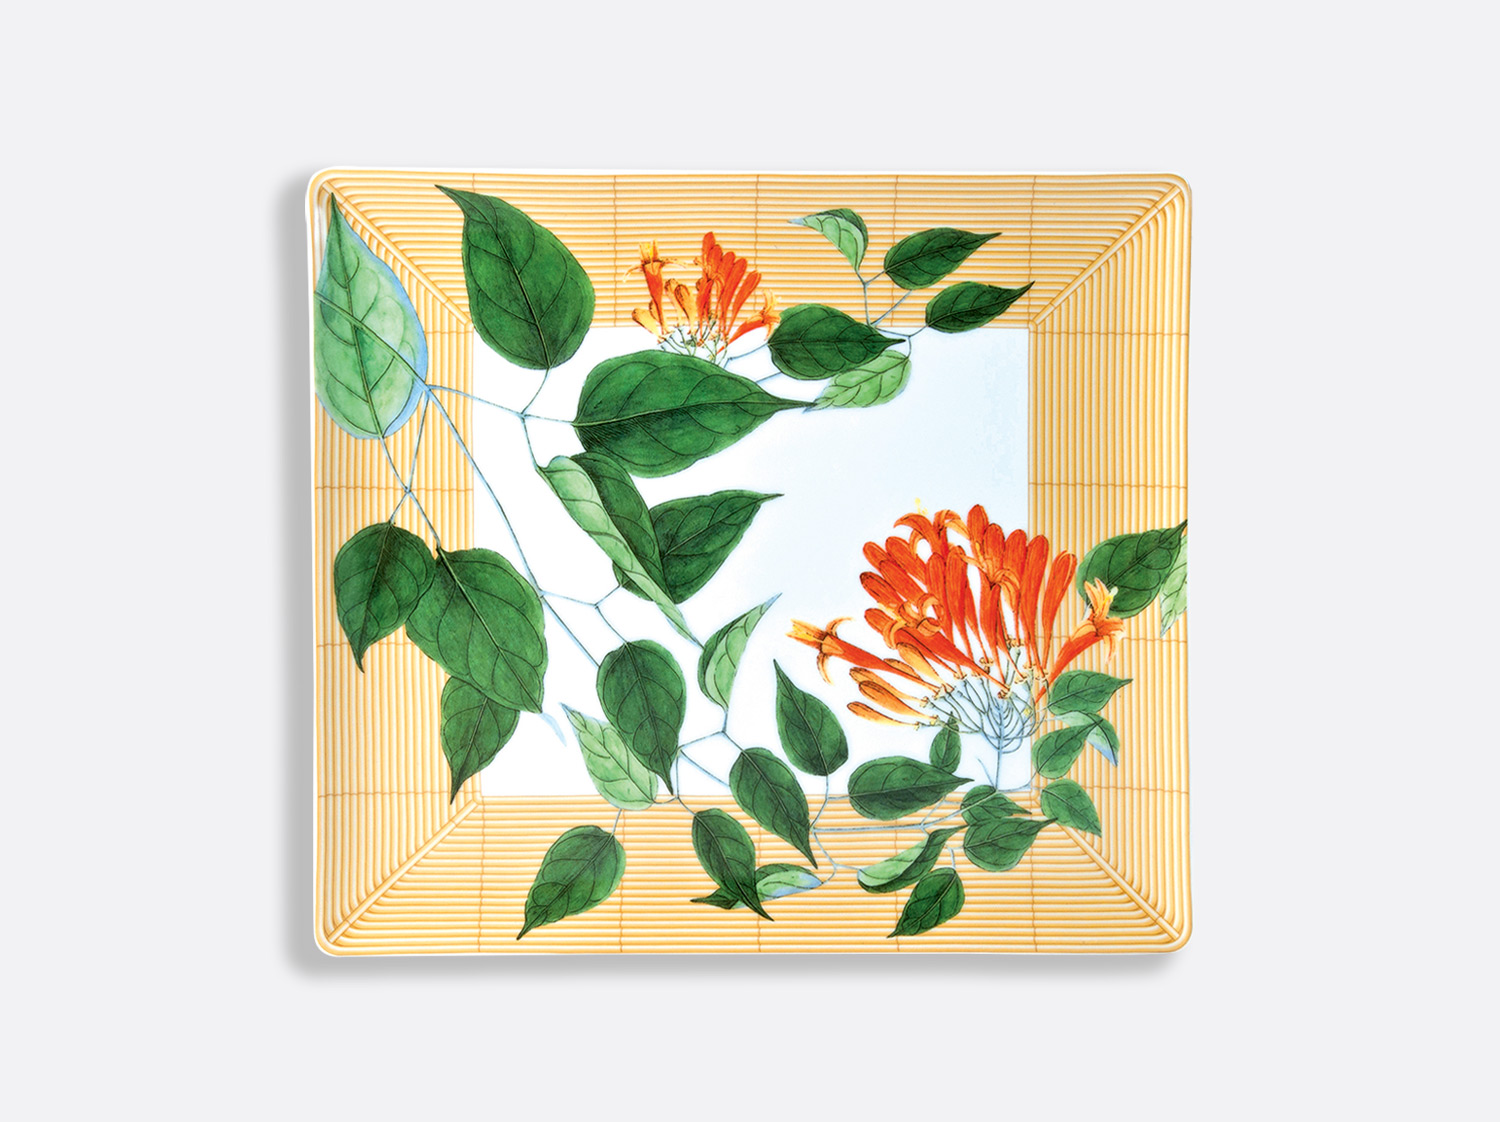 Plateau rectangulaire 26,5 x 23,5 cm en porcelaine de la collection Jardin indien Bernardaud